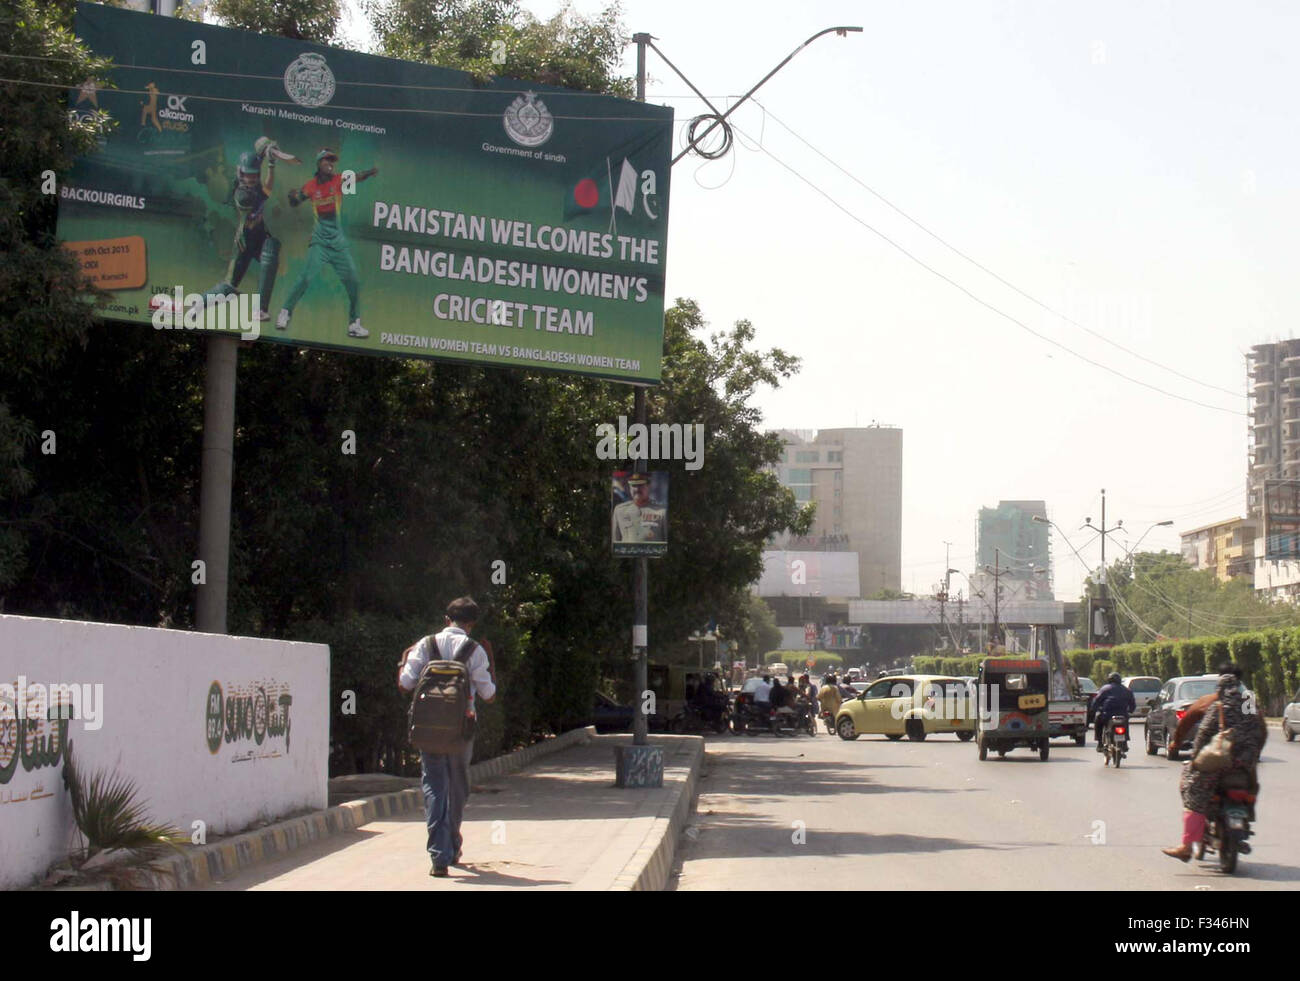 View Of Newly Installed Billboard For Public City Of Cricket Matches Between Pakistan Women Cricket Team And Bangladesh Women Cricket Team